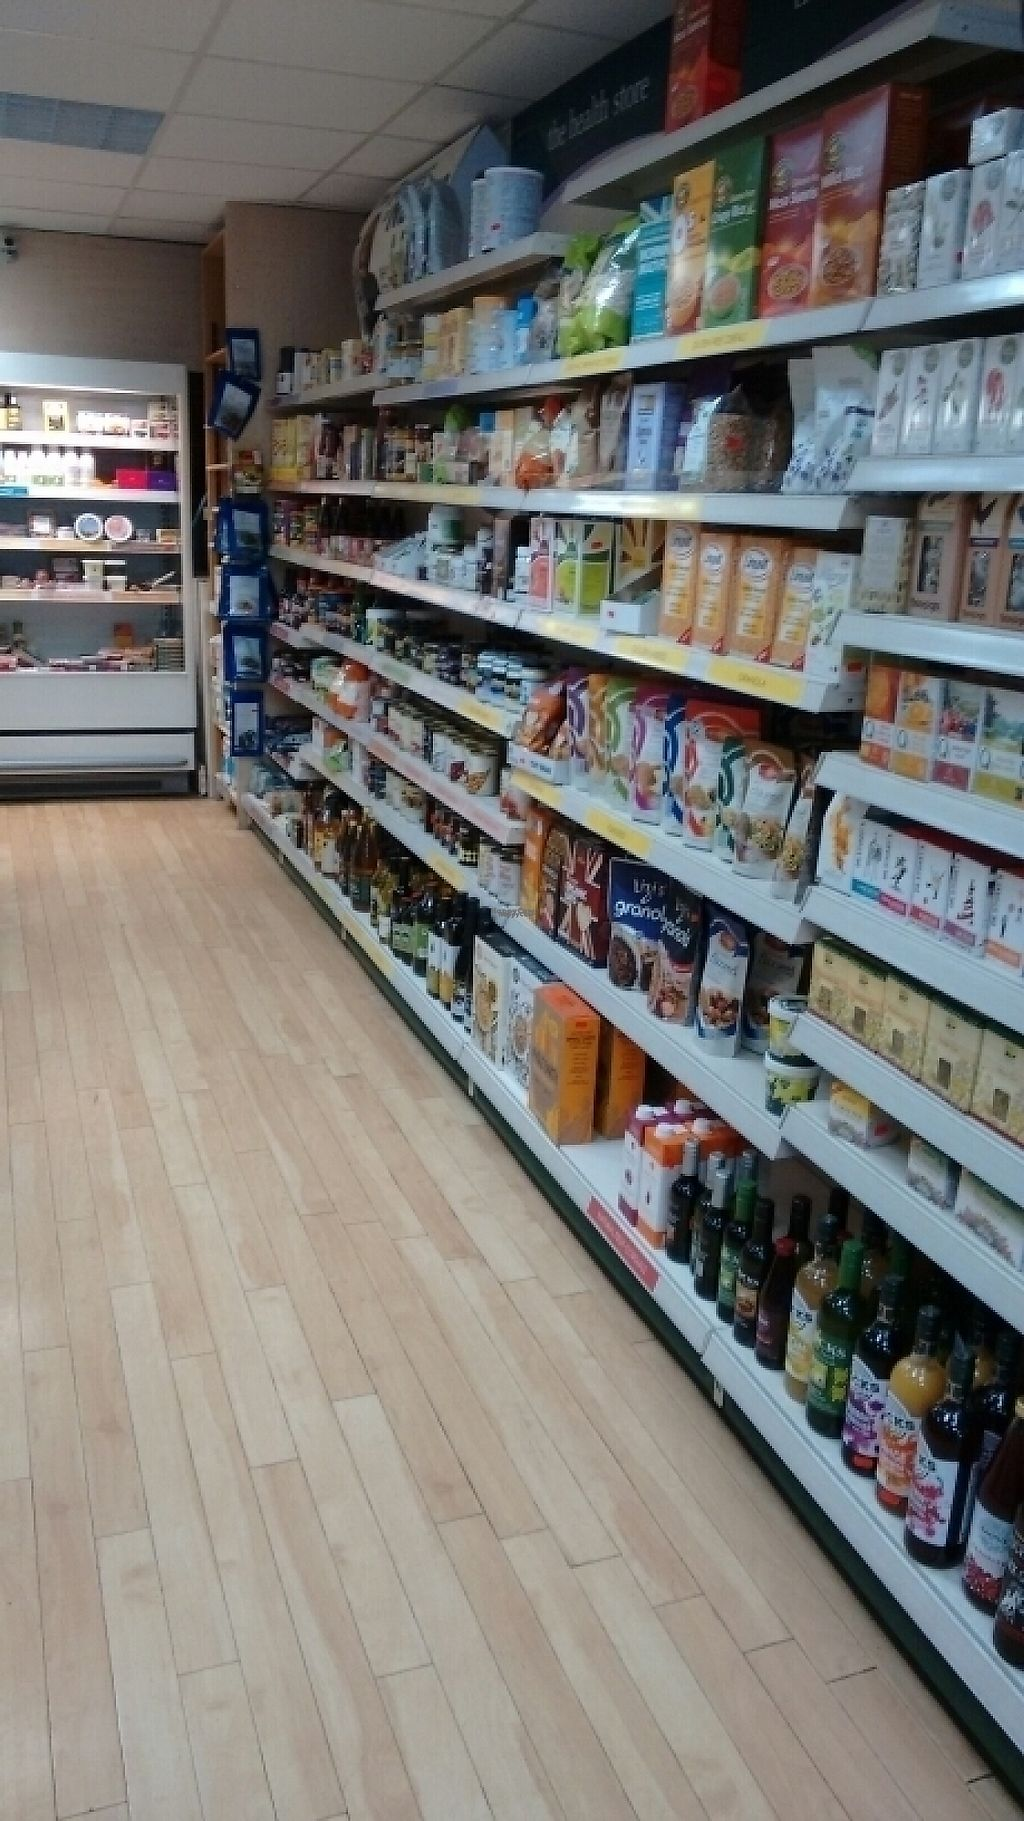 """Photo of The Health Store  by <a href=""""/members/profile/craigmc"""">craigmc</a> <br/>goodies <br/> November 19, 2016  - <a href='/contact/abuse/image/32642/192095'>Report</a>"""